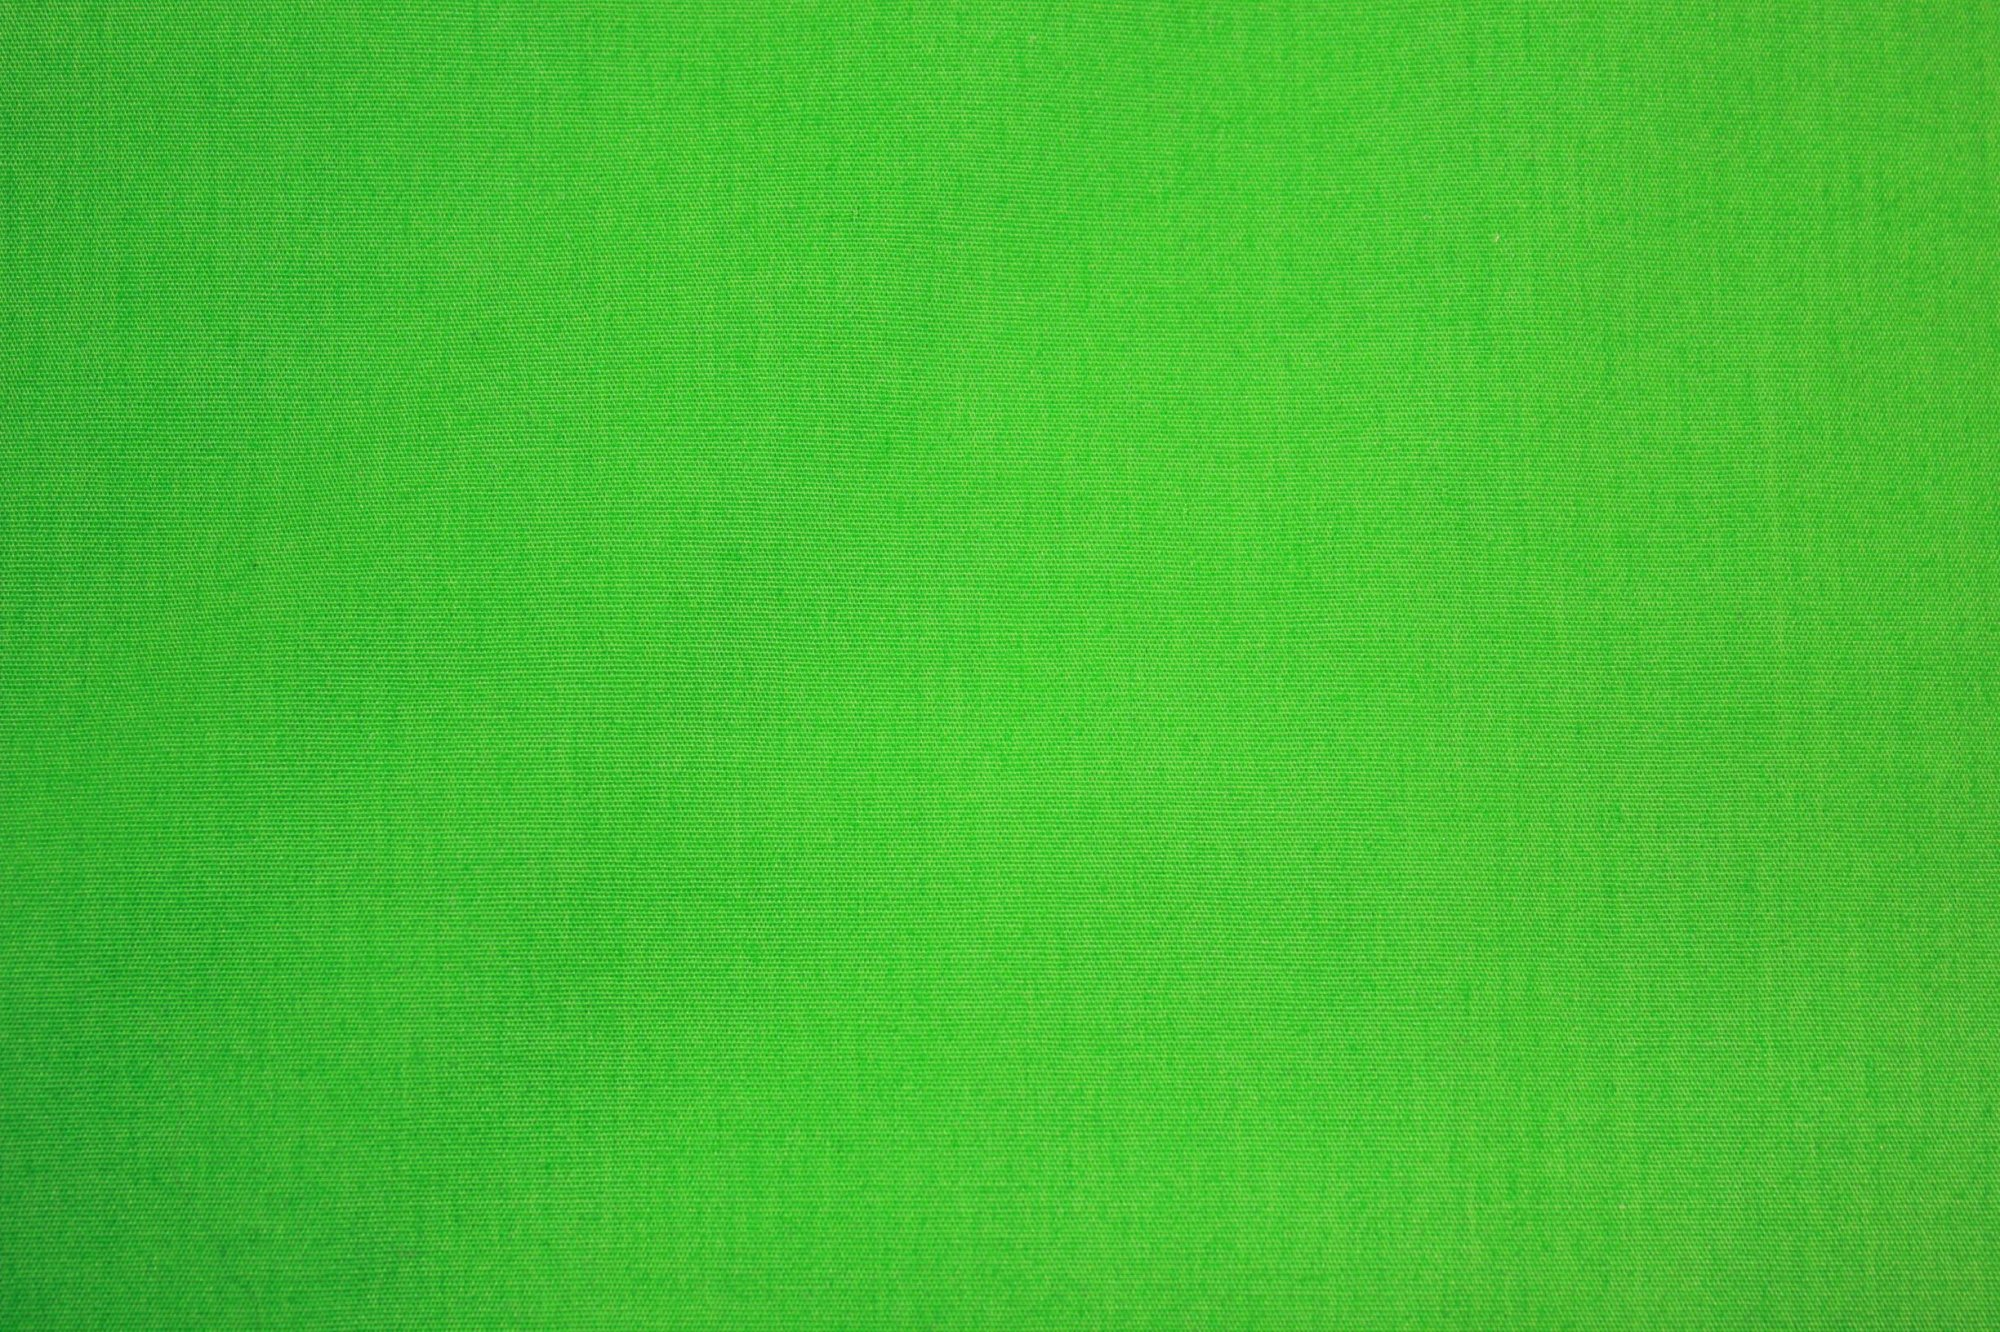 Solid - Bright Green